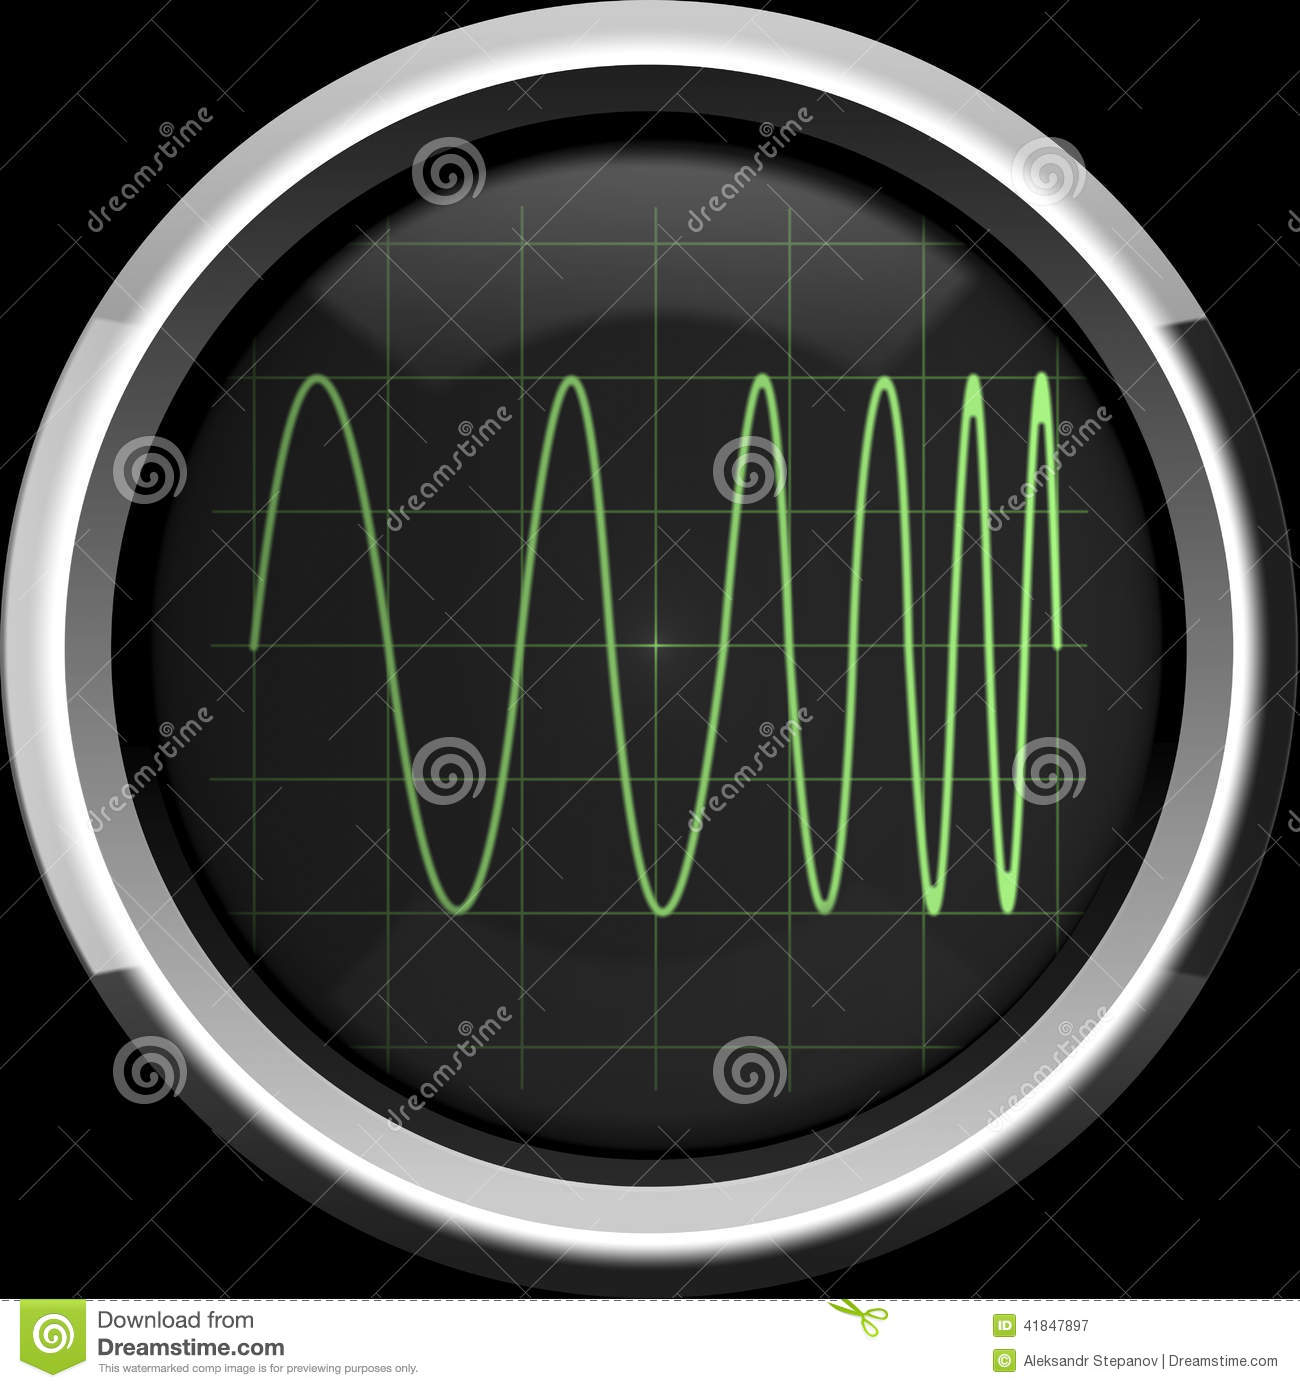 Signal With Frequency Modulation Fm Stock Illustration Modulated Oscillator Circuit